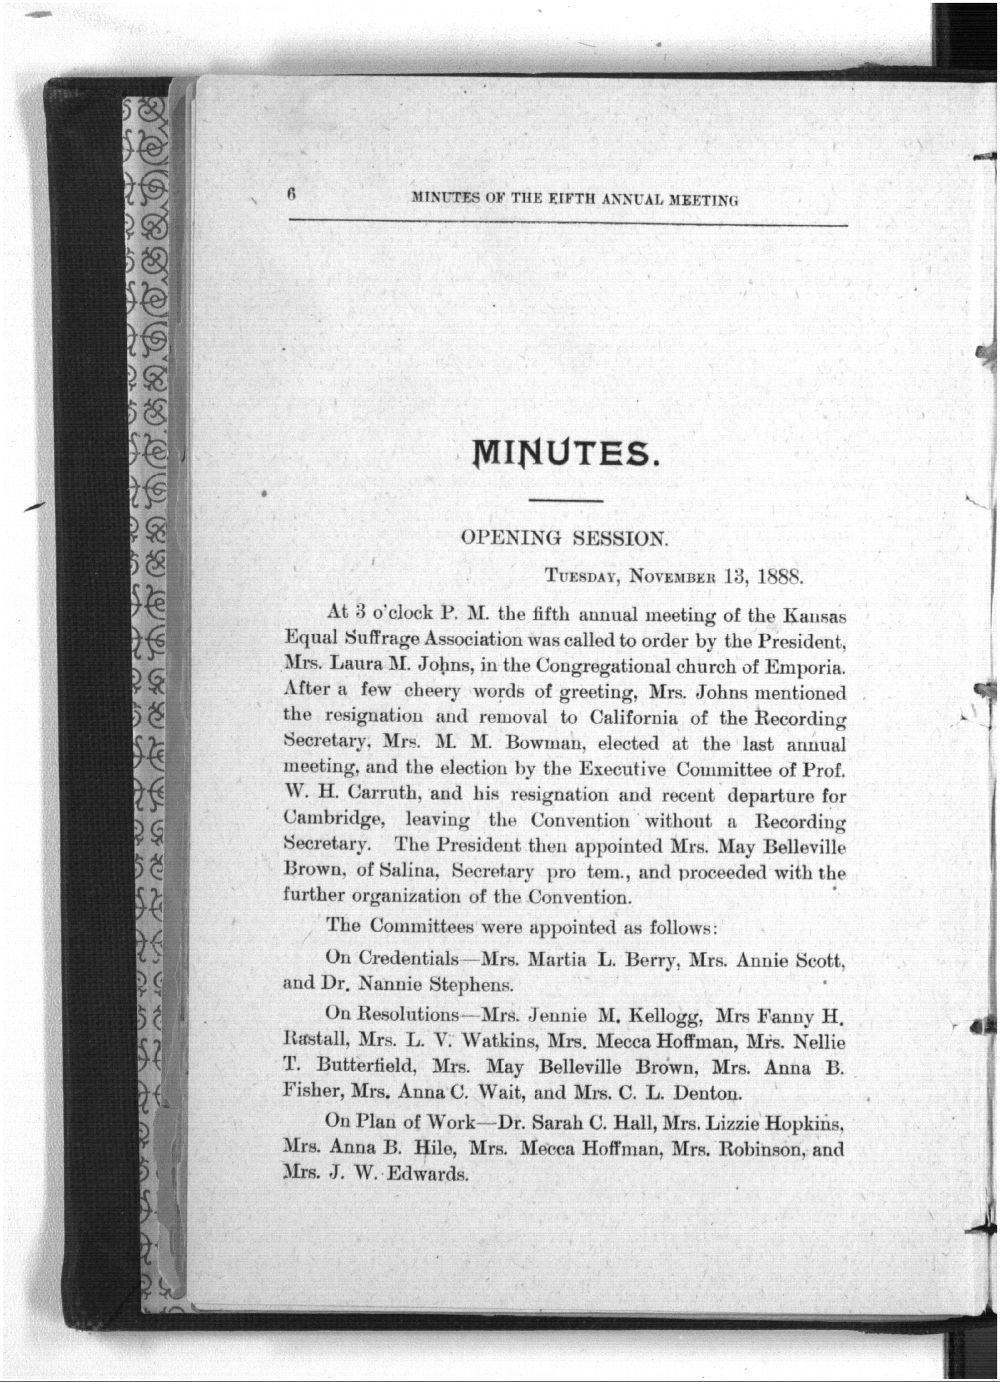 Minutes of the Kansas Equal Suffarge Association at the fifth annual meeting - 6